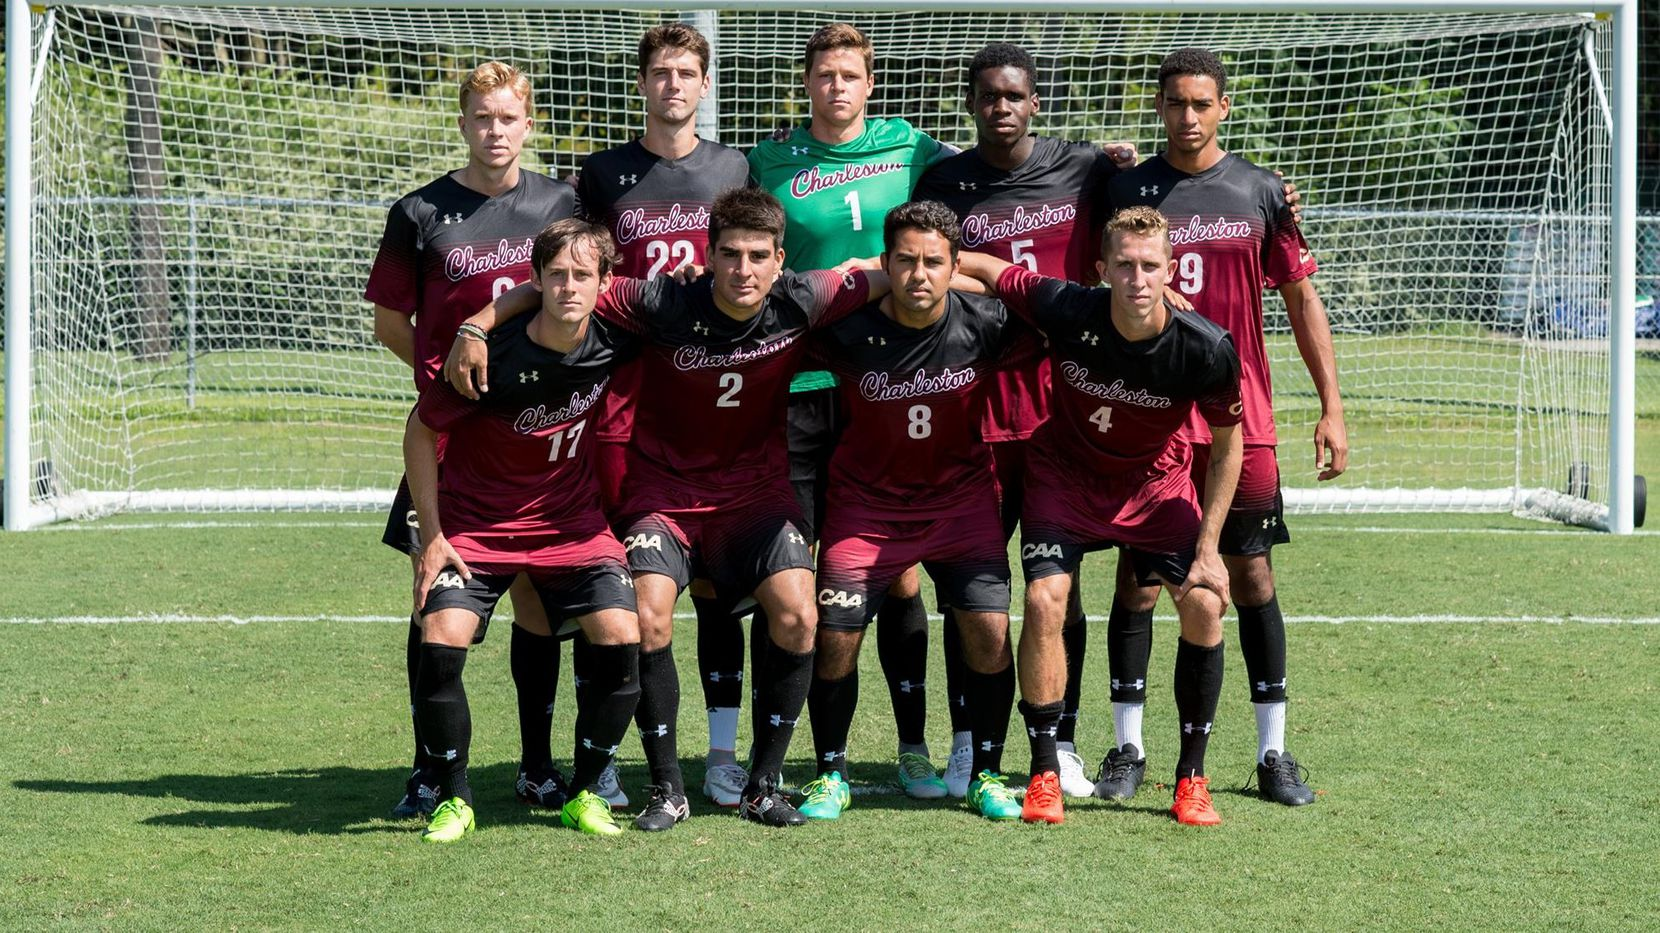 A College of Charleston starting XI, Cesar Murillo is wearing the #2 in the front row.